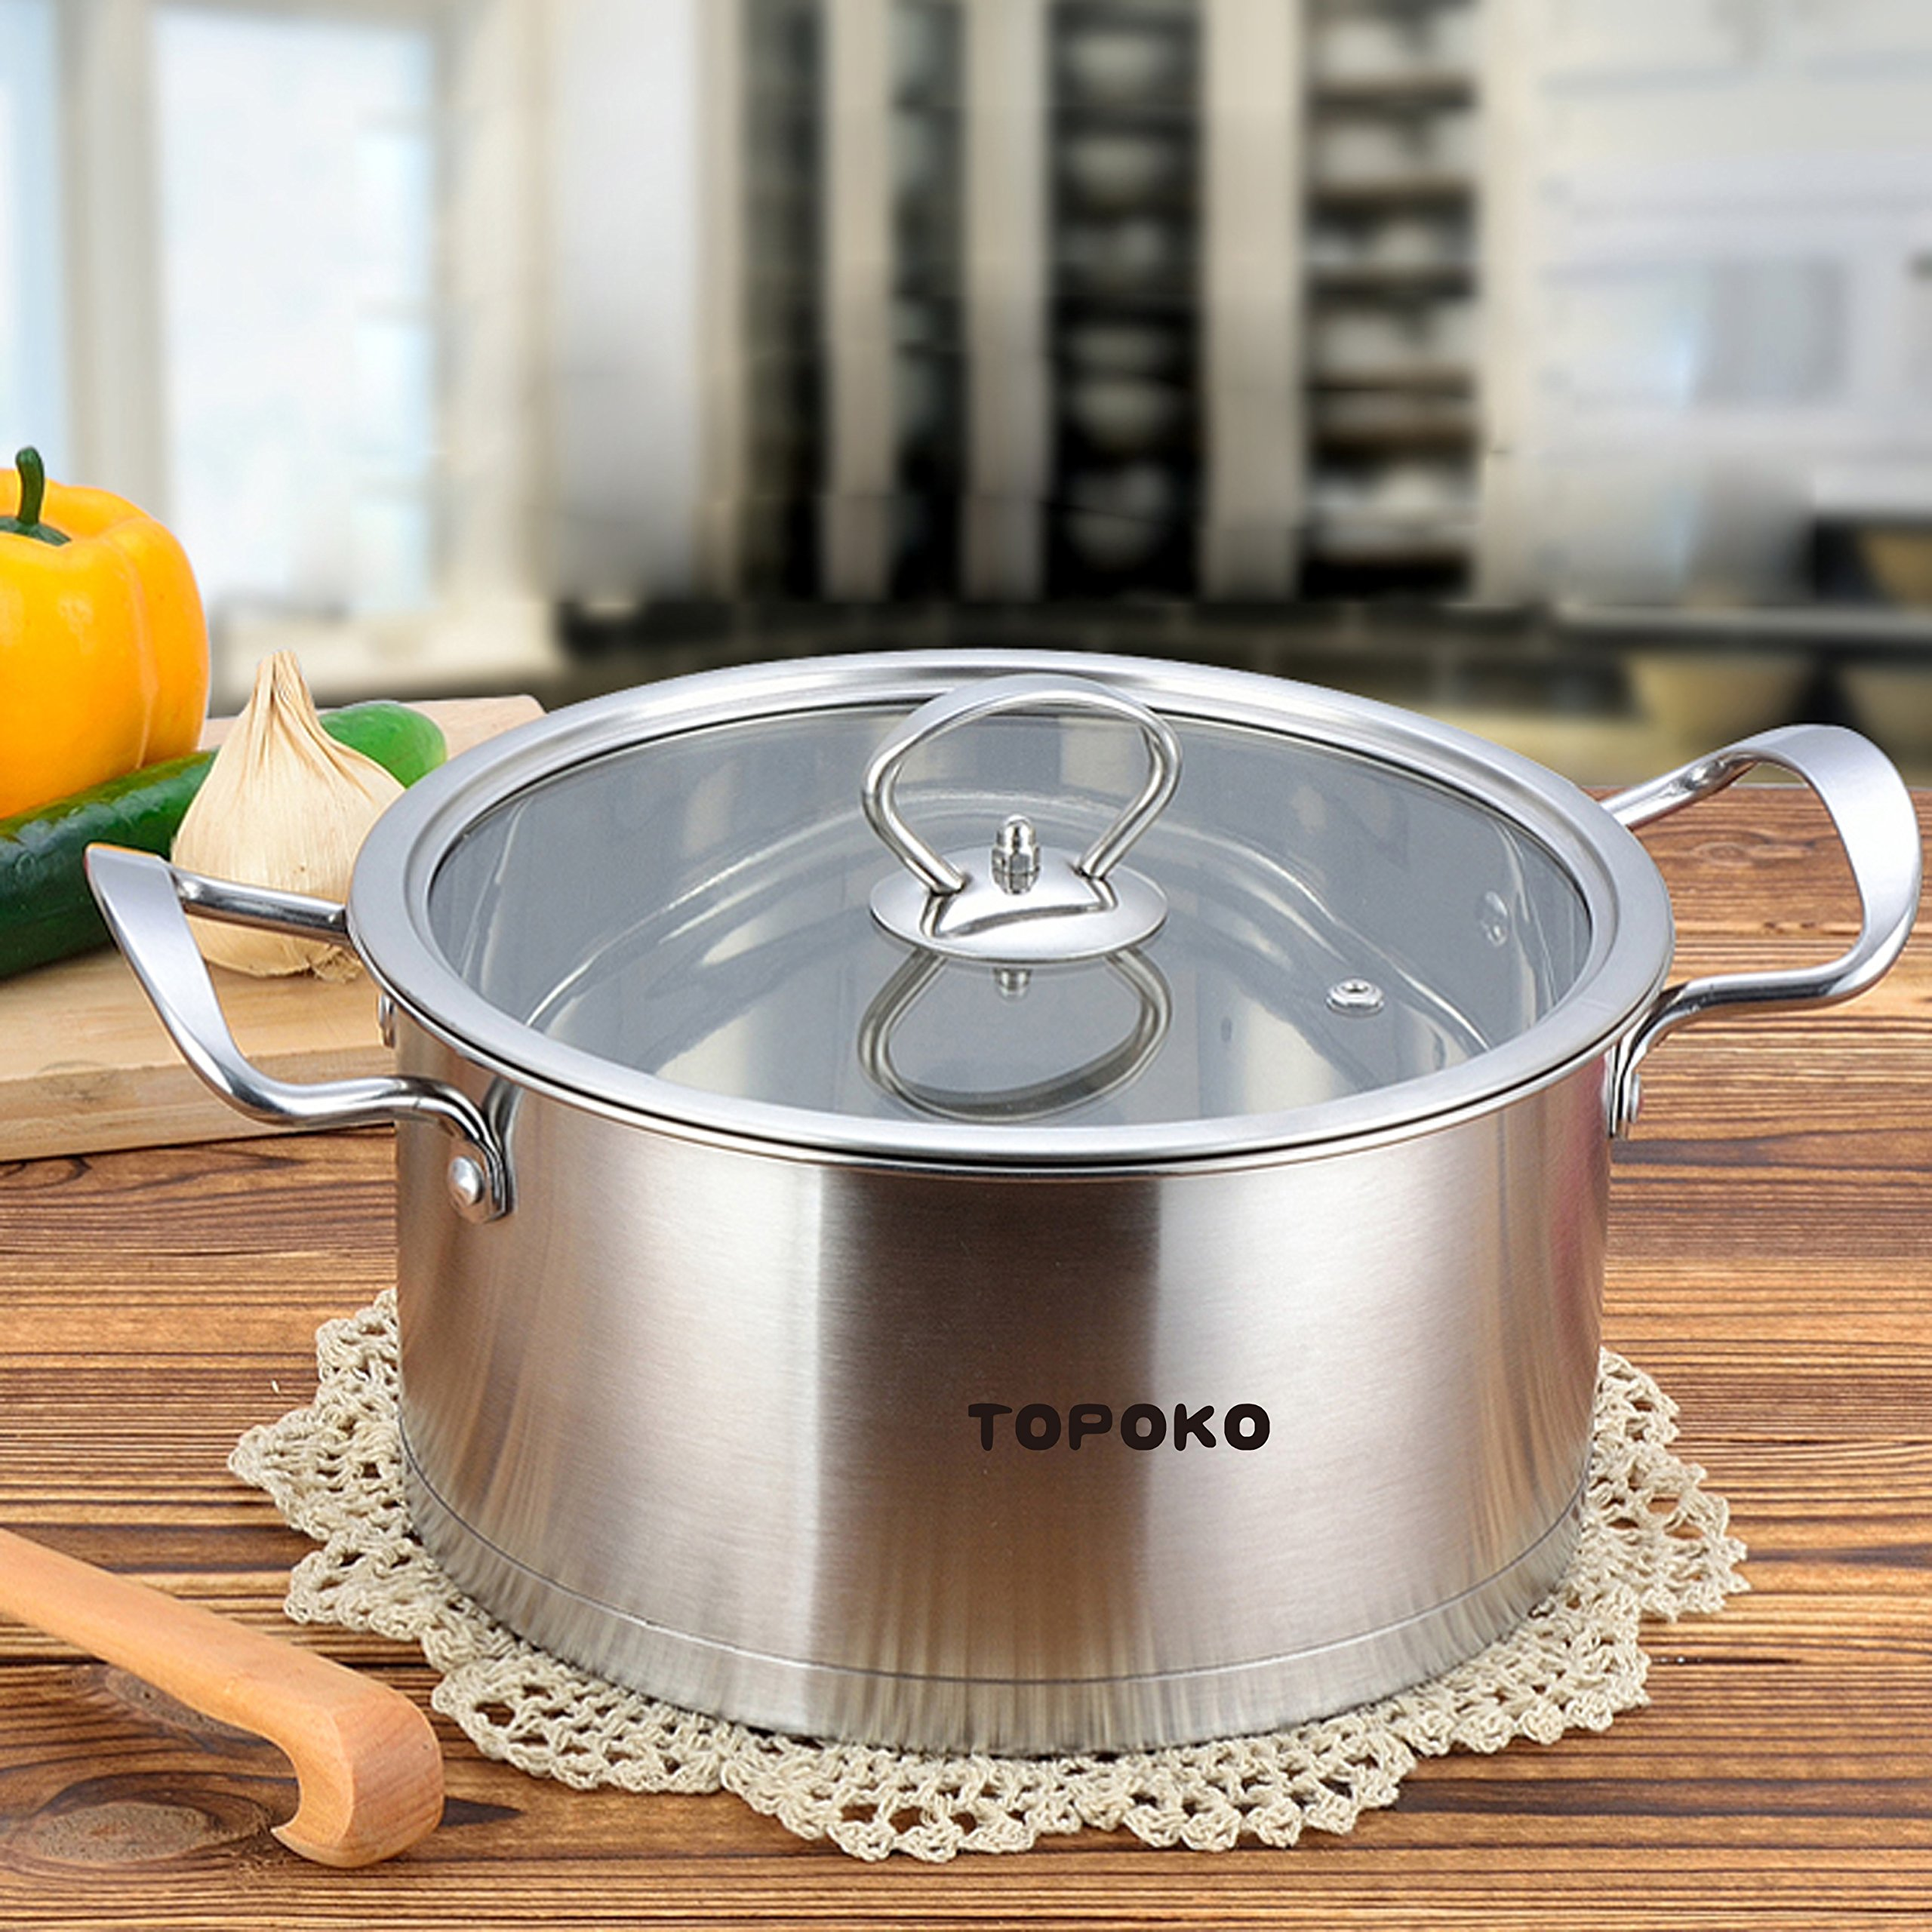 Stainless steel 3 qt sauce pot with lid for Perfect kitchen cookware